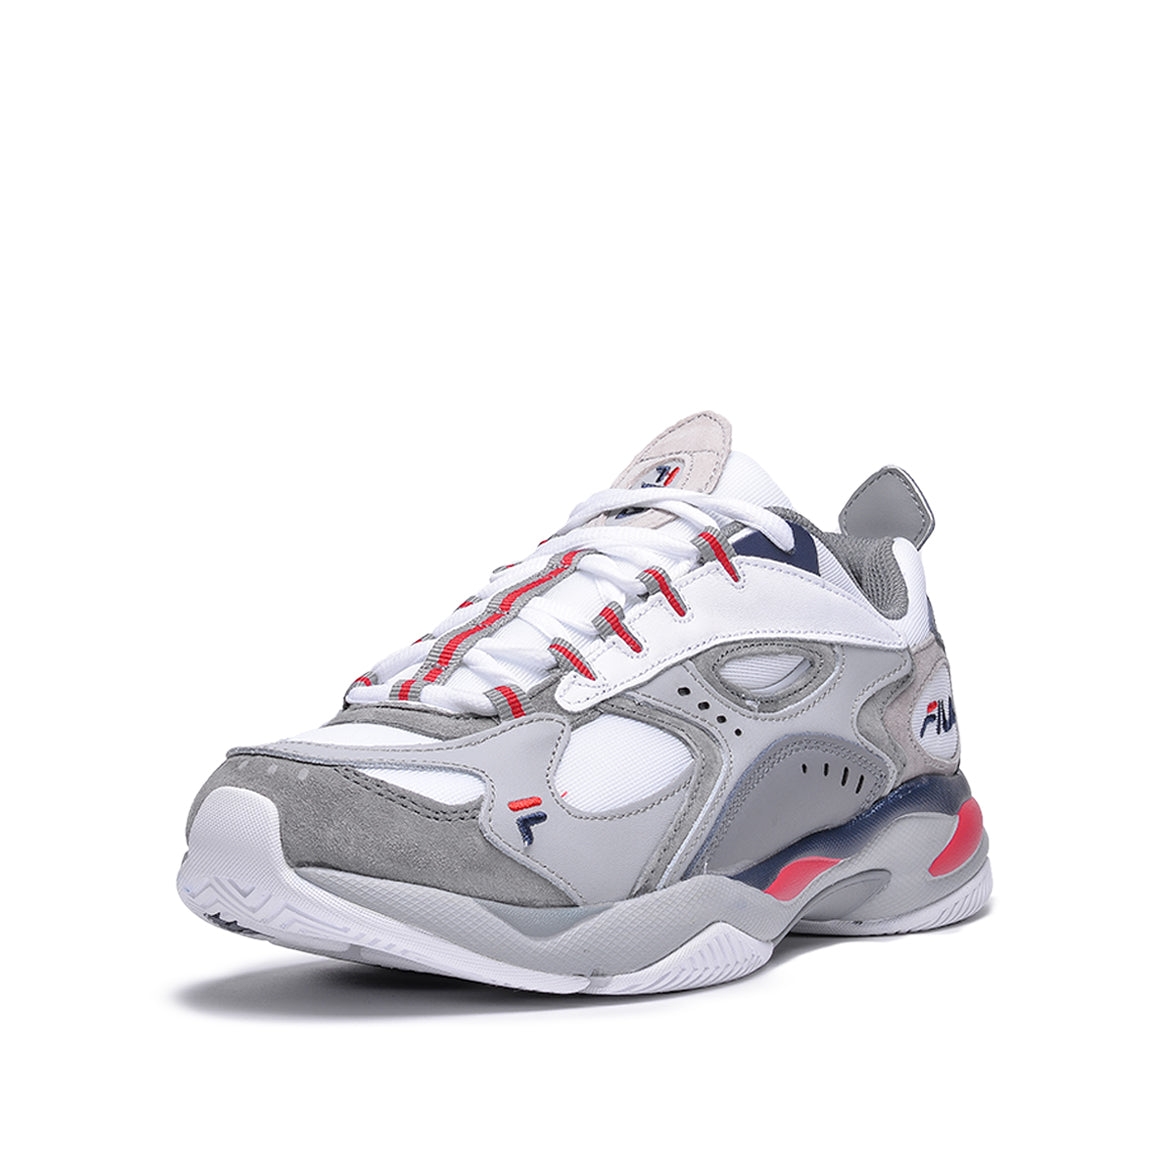 BOVEASORUS - WHITE / SILVER / NAVY / RED